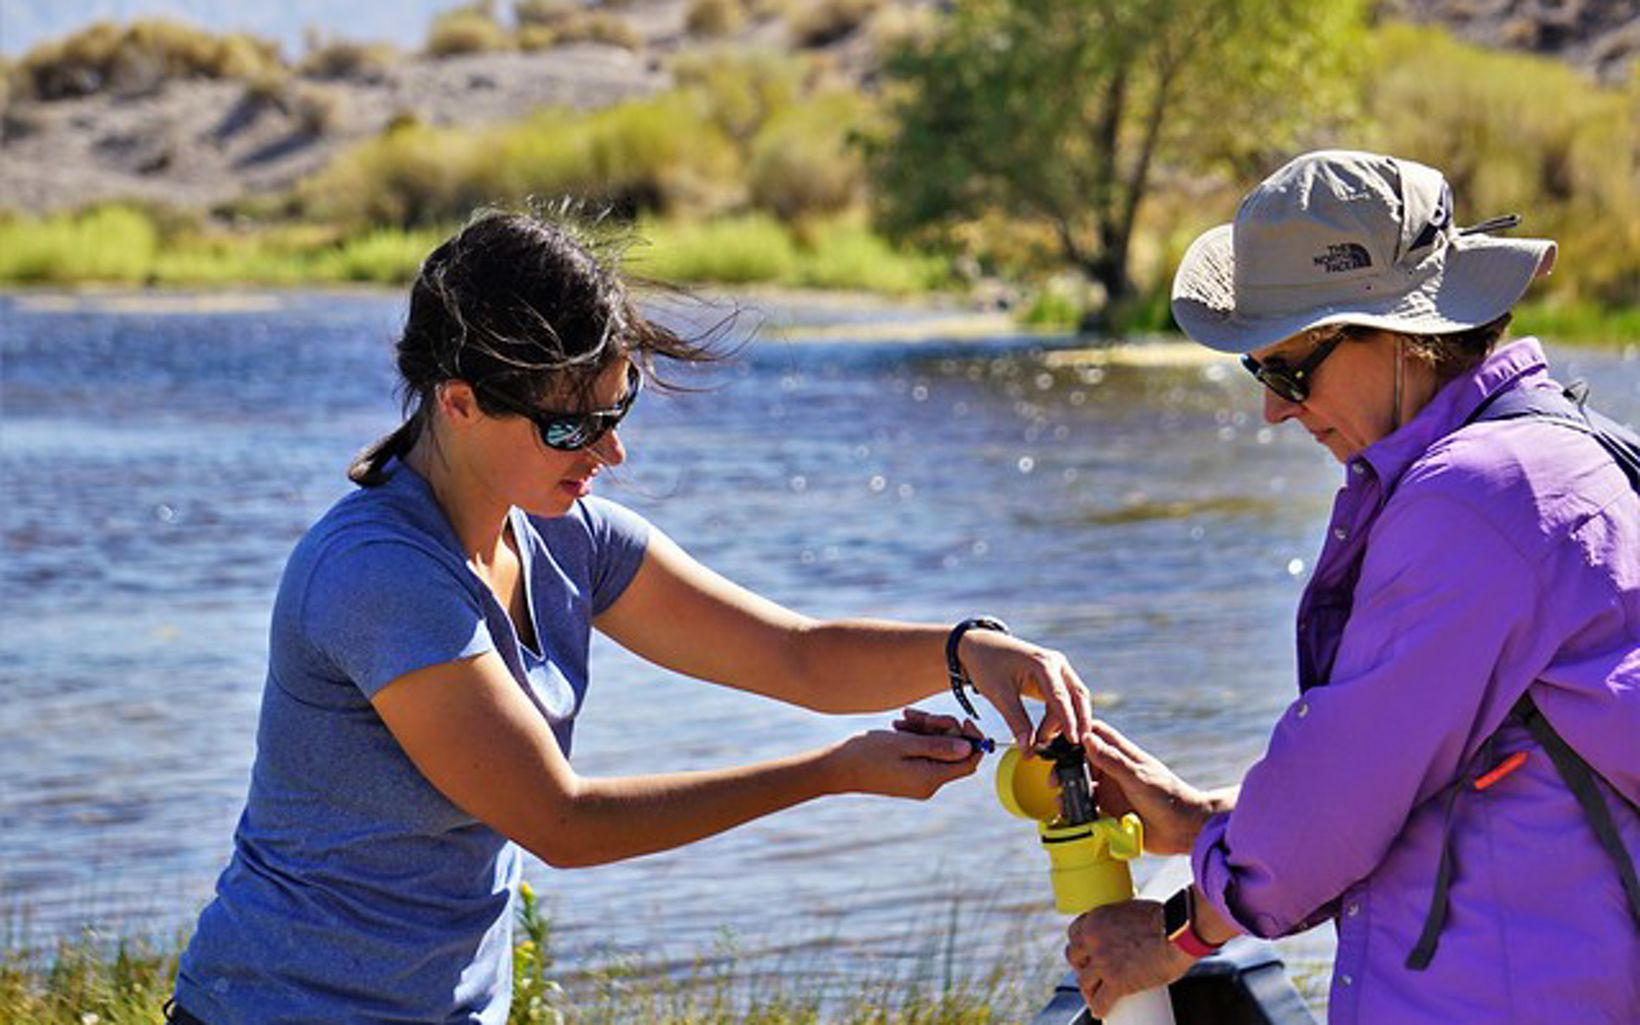 Desert Research Institute scientists launched two hydrology projects at the preserve in 2019.